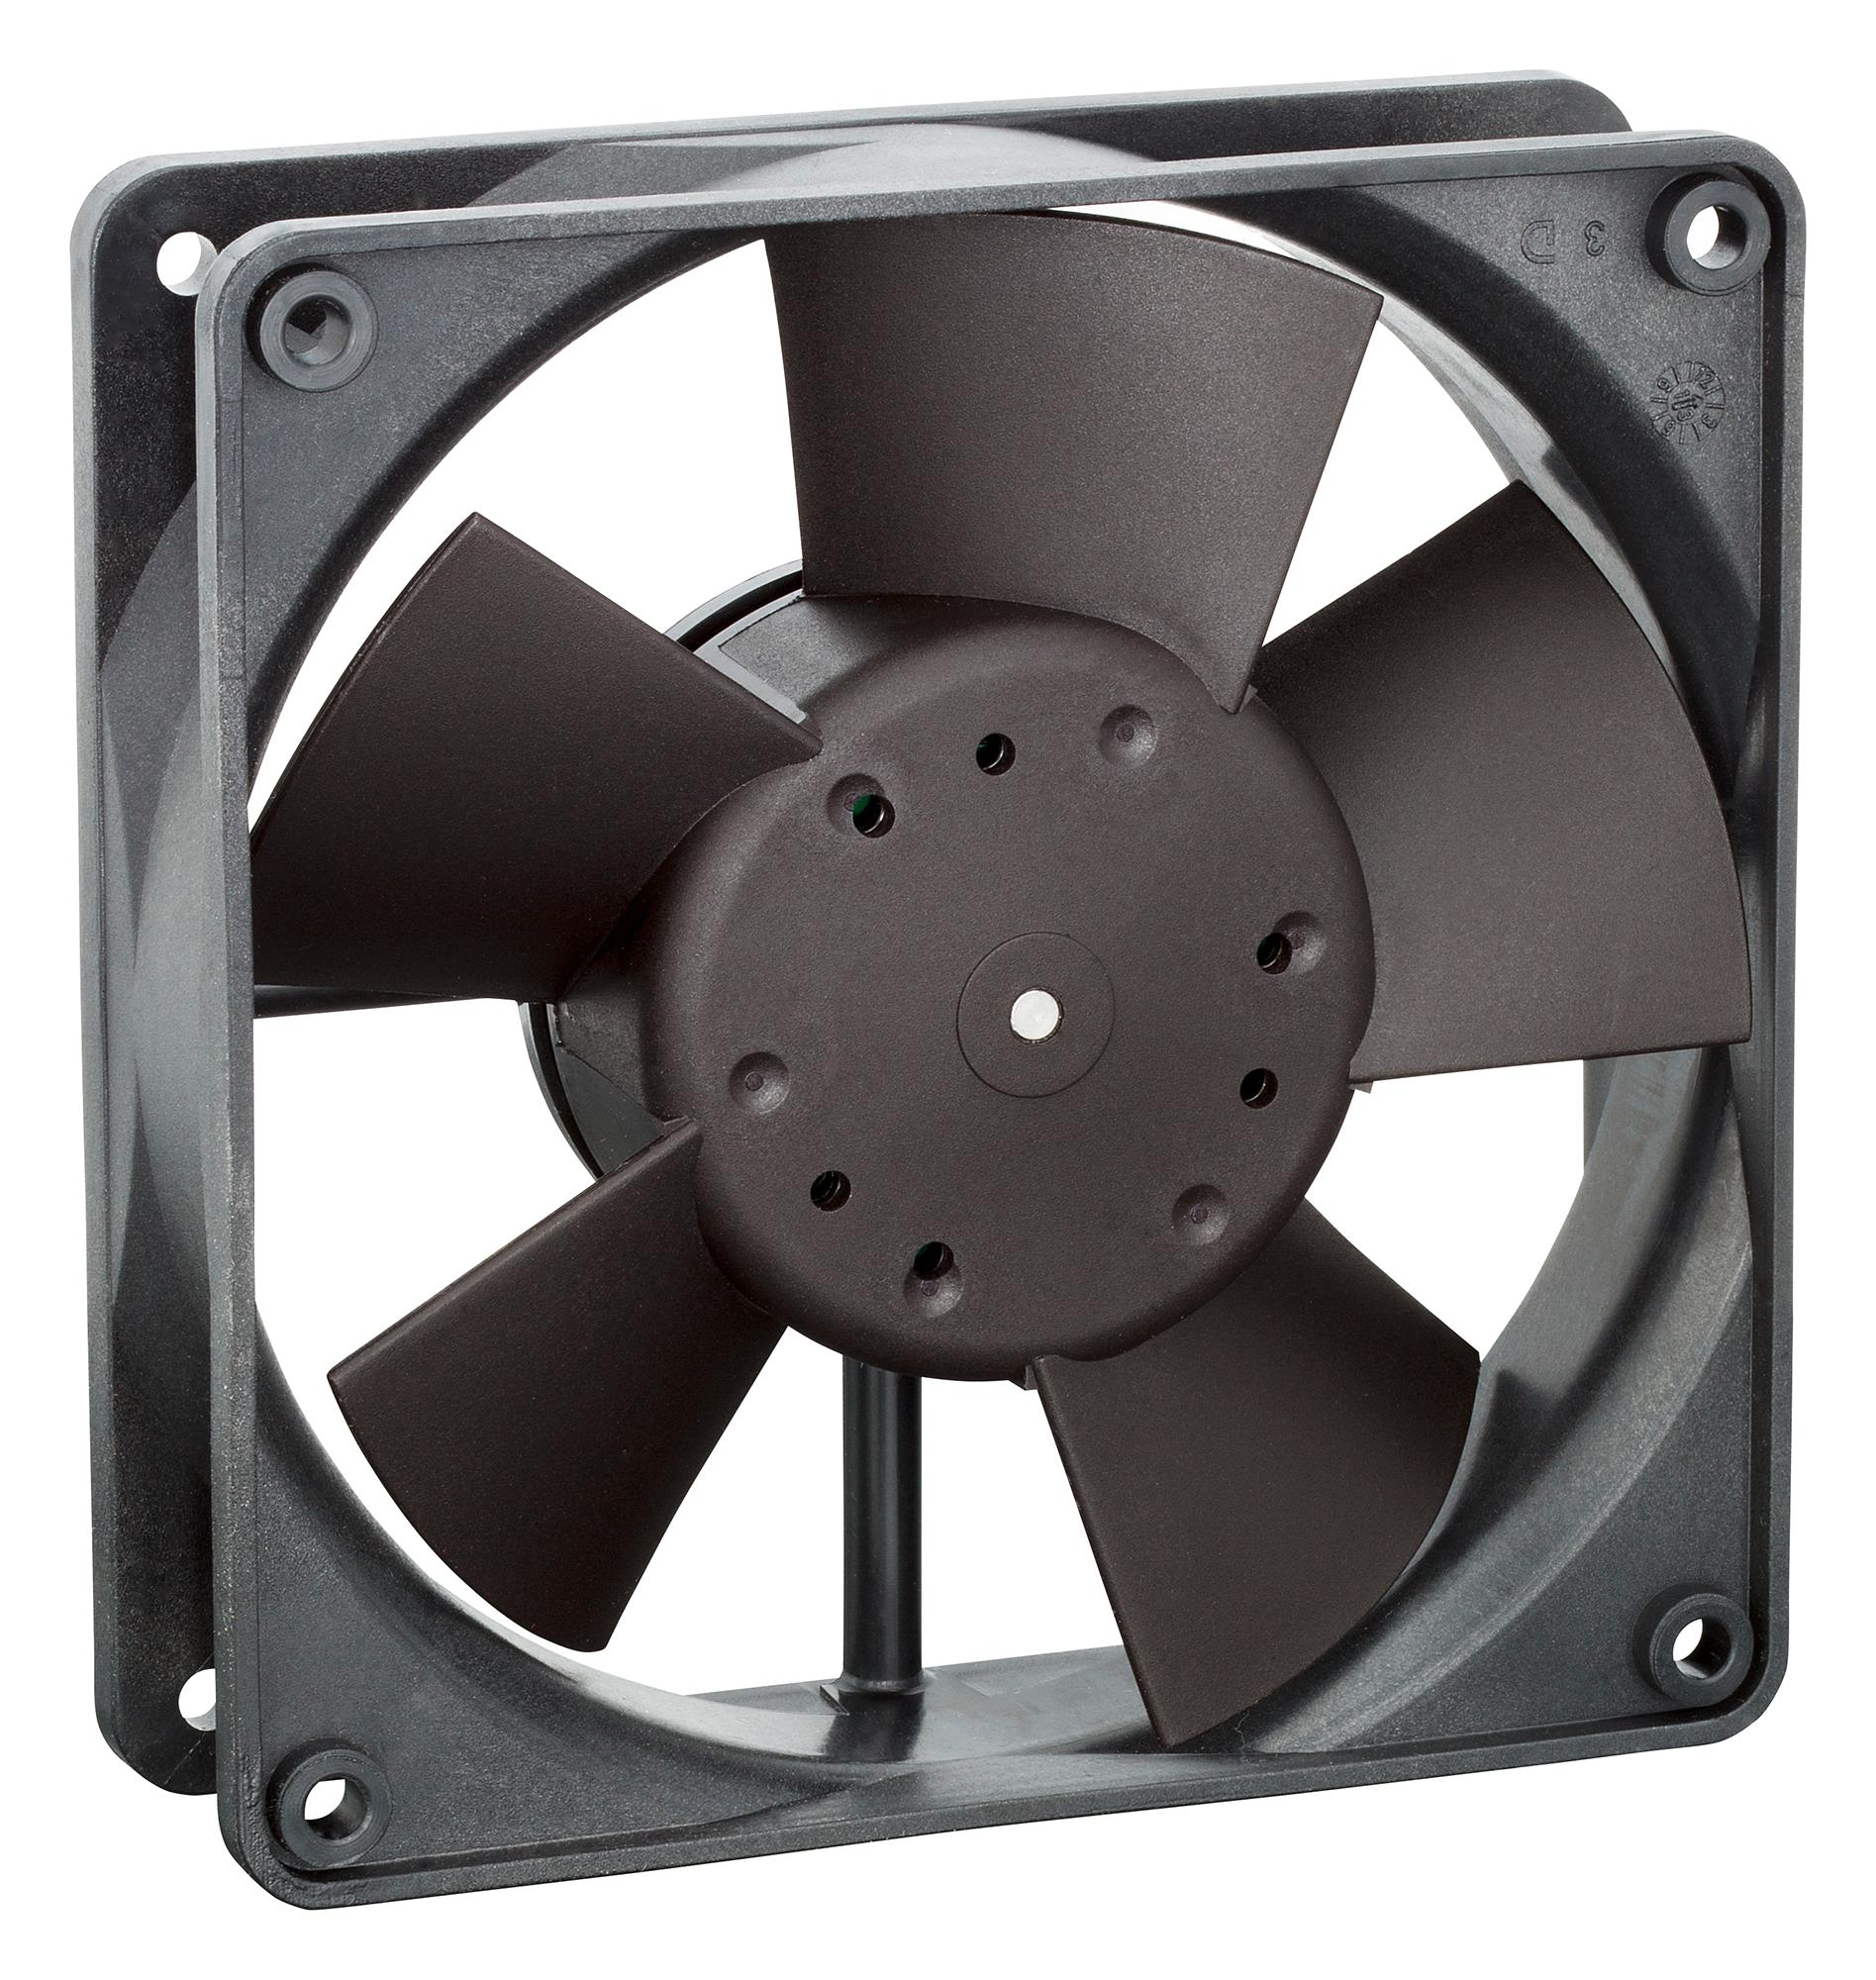 hight resolution of 4314 ebm papst axial fan 4300 series ip20 ebm papst fans 4314 wiring diagram